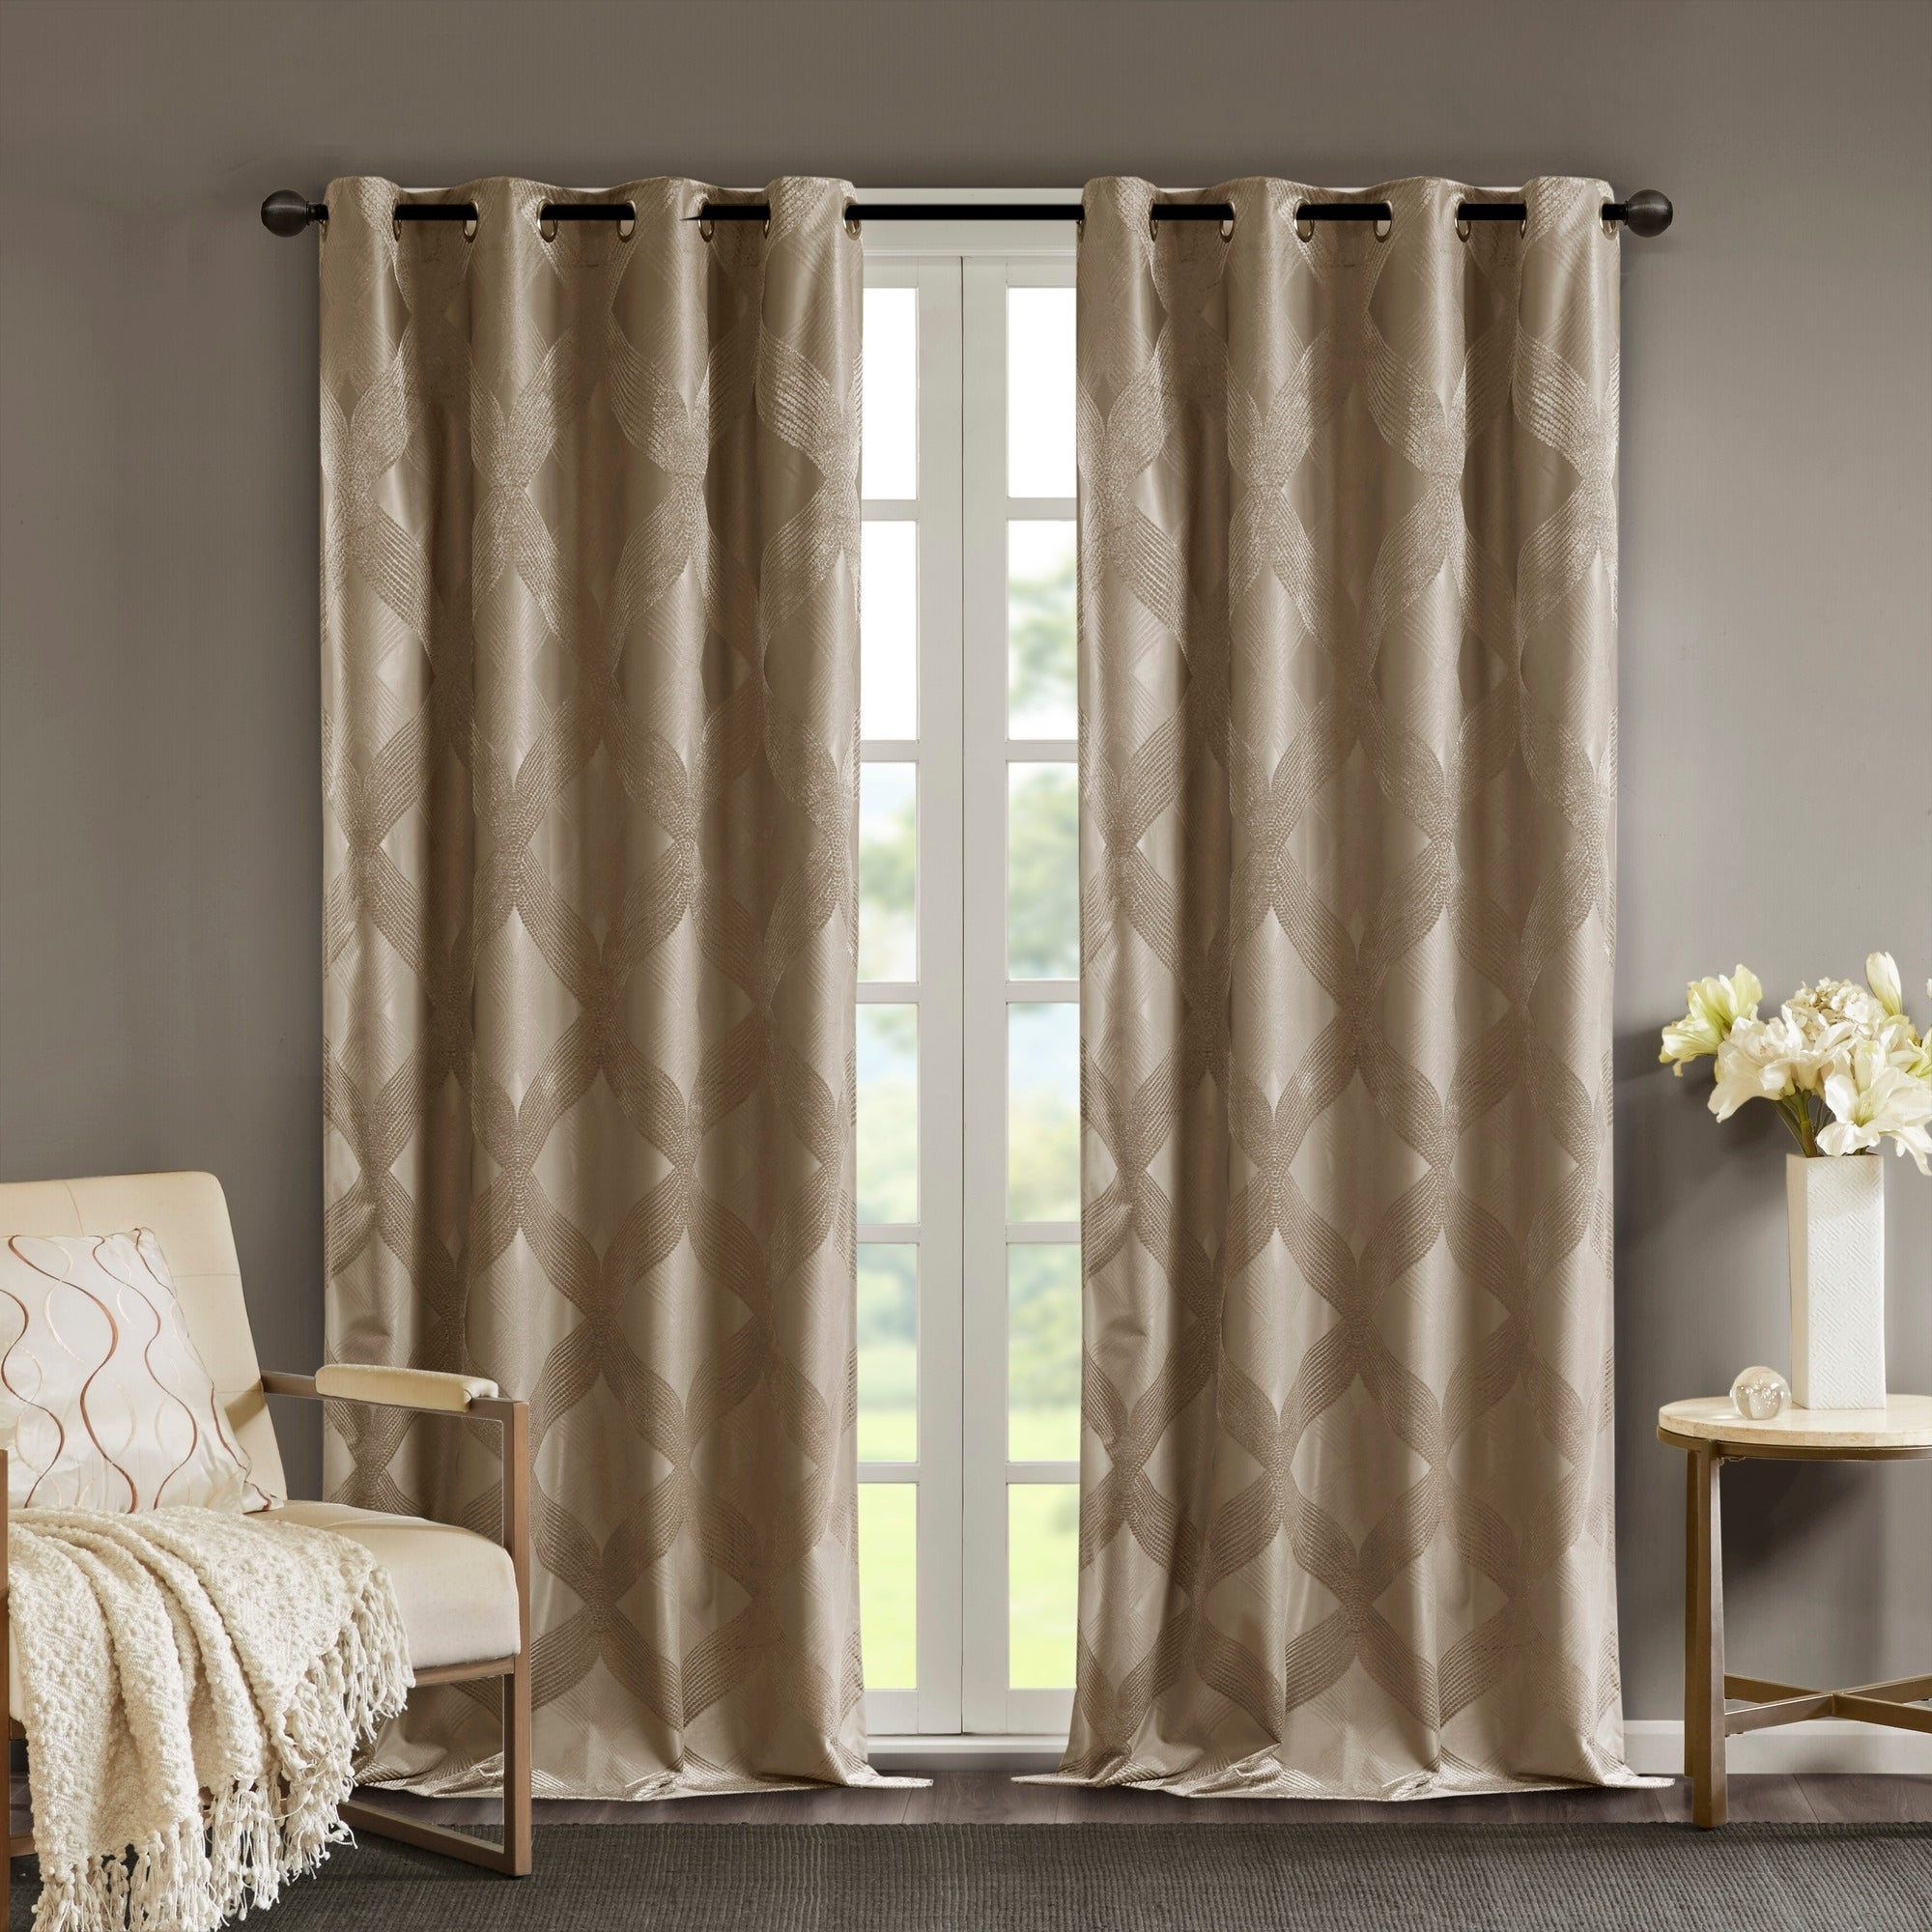 Sunsmart Abel Ogee Knitted Jacquard Total Blackout Curtain Panels Inside Trendy Sunsmart Abel Ogee Knitted Jacquard Total Blackout Curtain Panel (View 4 of 20)